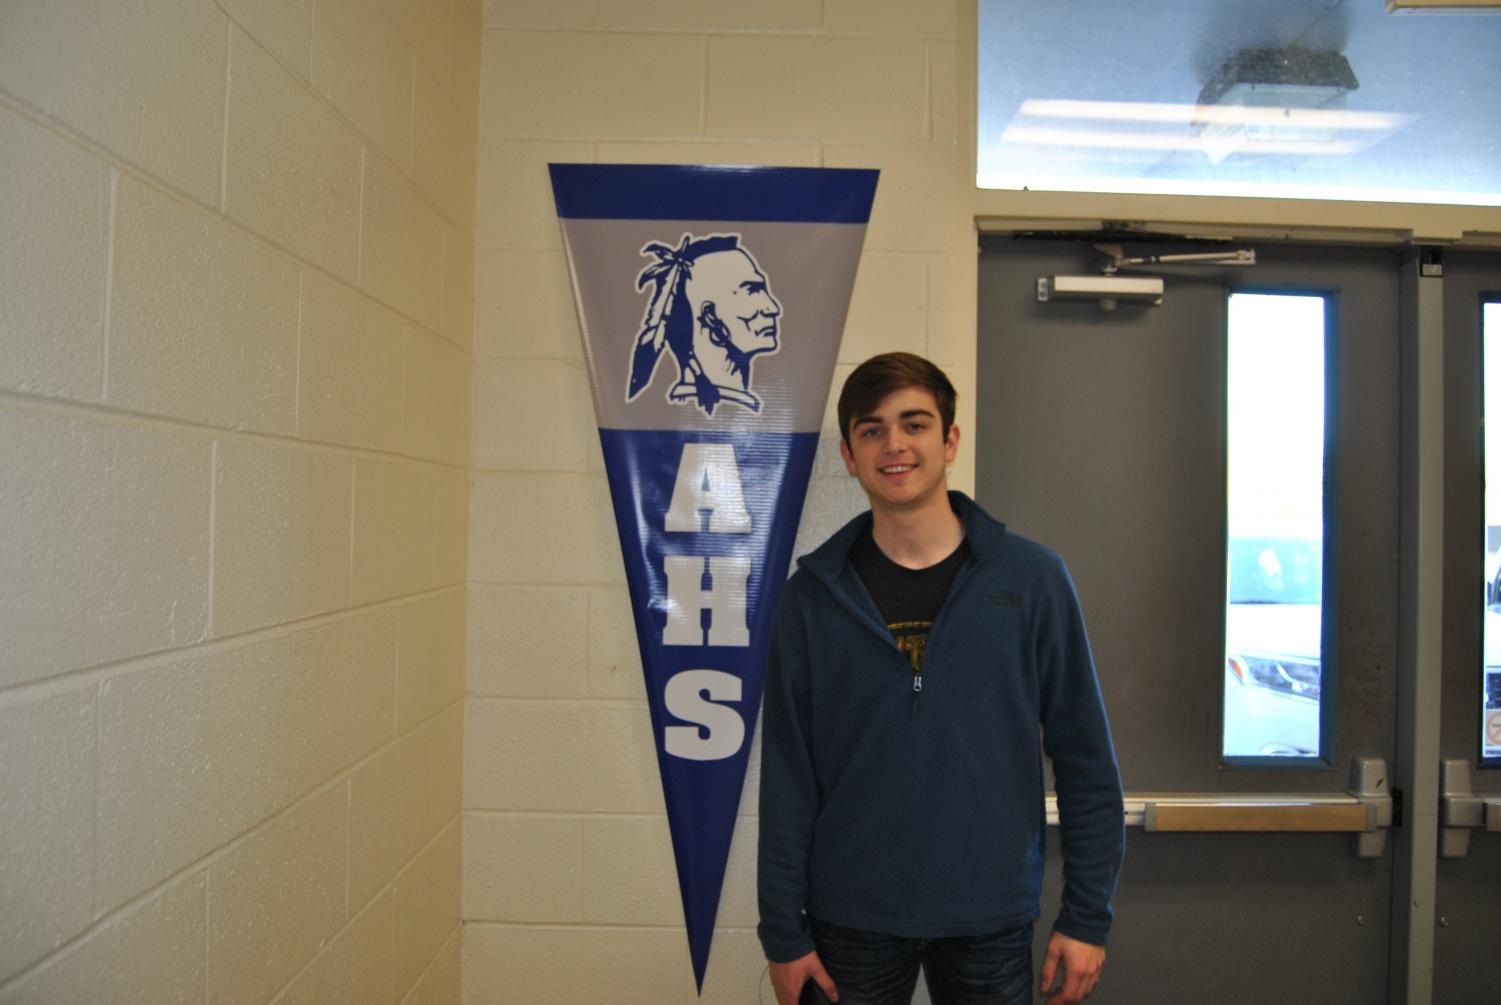 Luke+Smith%2C+senior+at+AHS%2C+is+going+to+Georgia+Highlands+College.+Luke+Smith+chose+this+college+because+it+was+the+best+price+for+him.+At+AHS+he+is+involved+with+FCA+and+FBLA.+Smith+said%2C+%E2%80%9CI%E2%80%99m+looking+forward+to+being+independent+after+high+school.%E2%80%9D